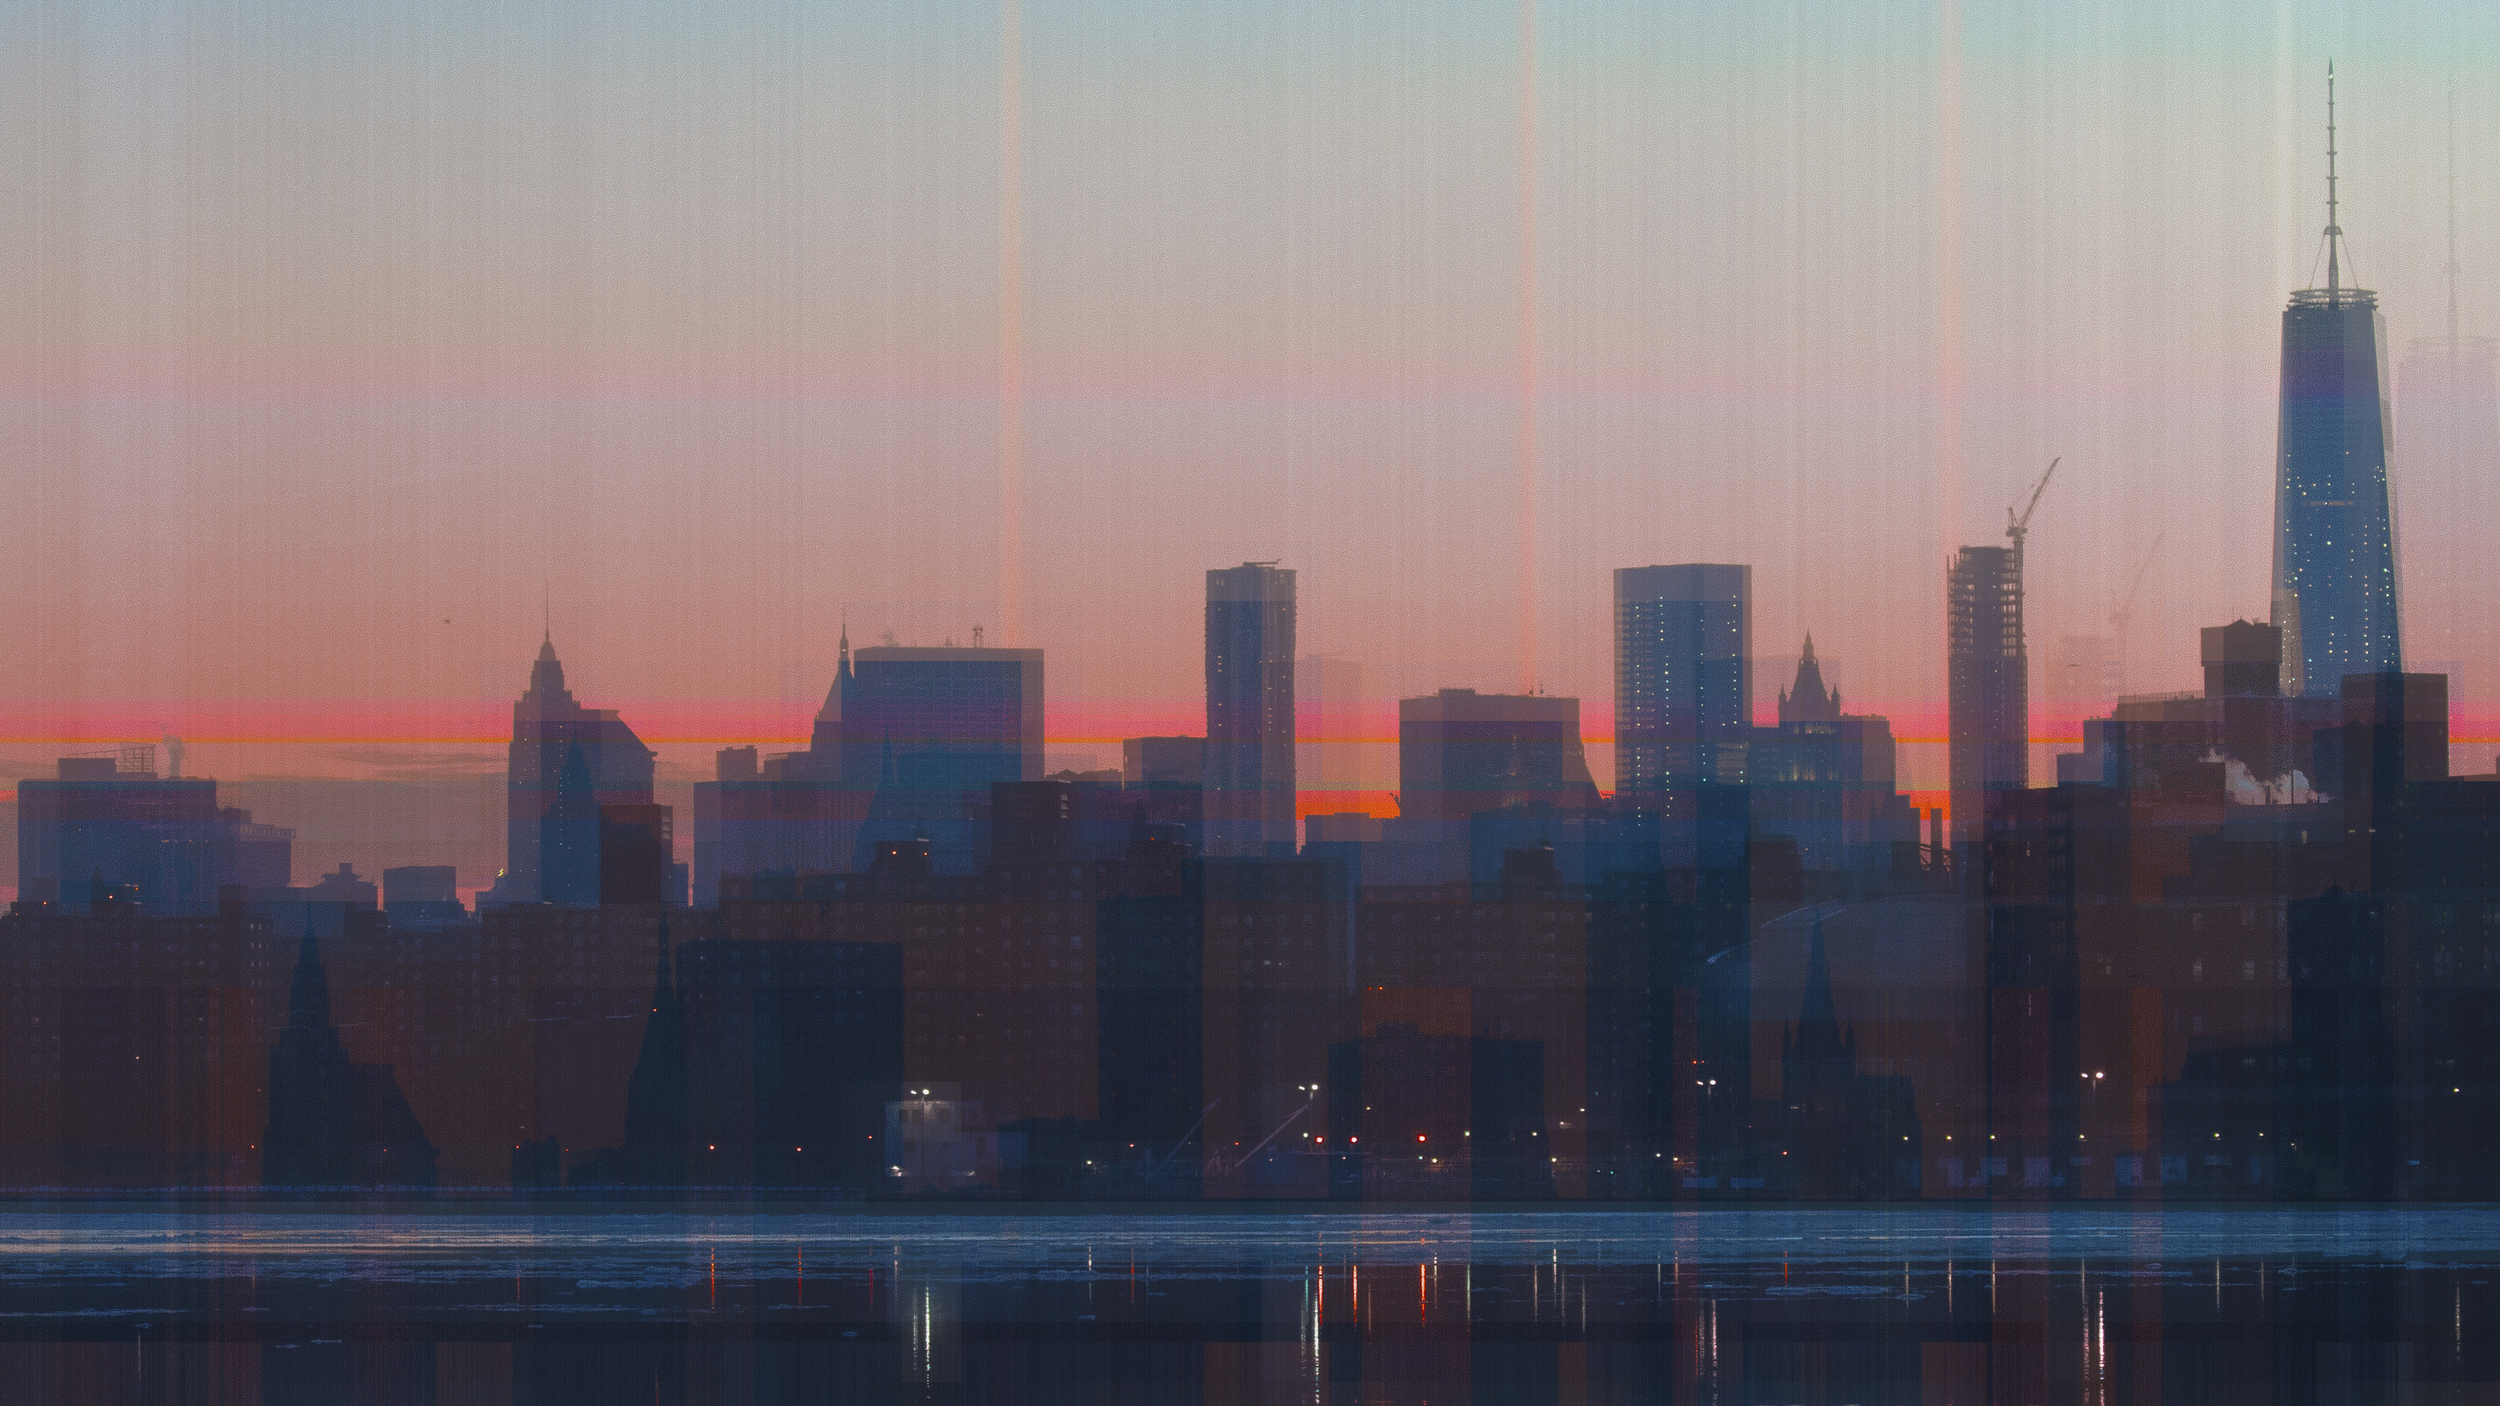 city view_croped_effects.jpg